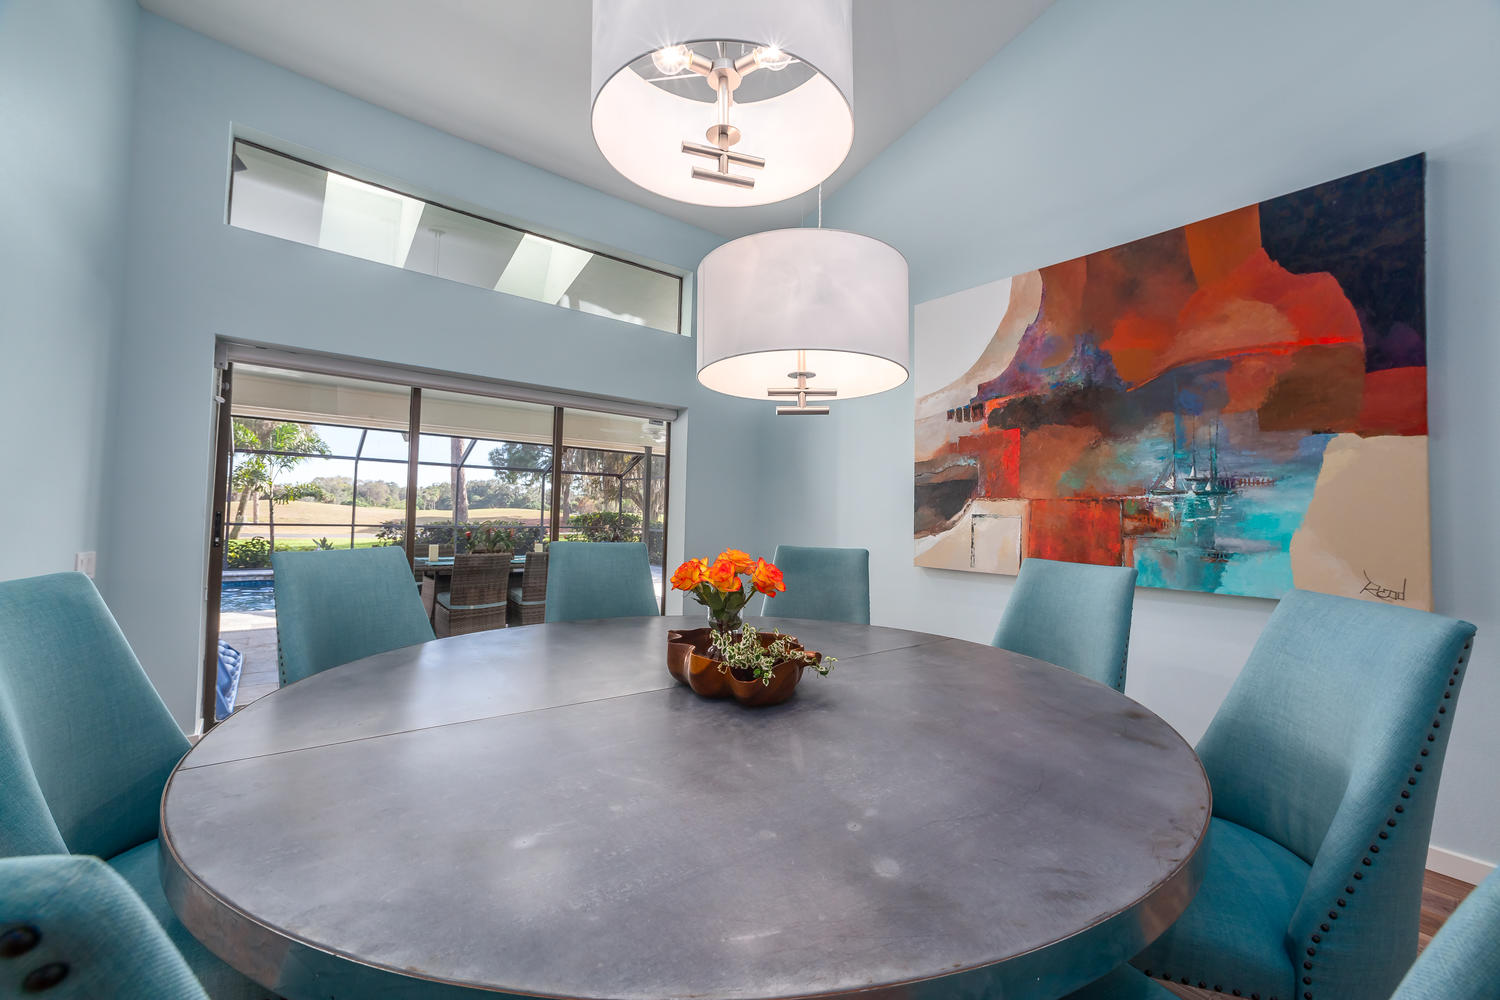 DINING ROOM_INTERIOR DESIGN_SARASOTA COUNTRY CLUB_AFTER